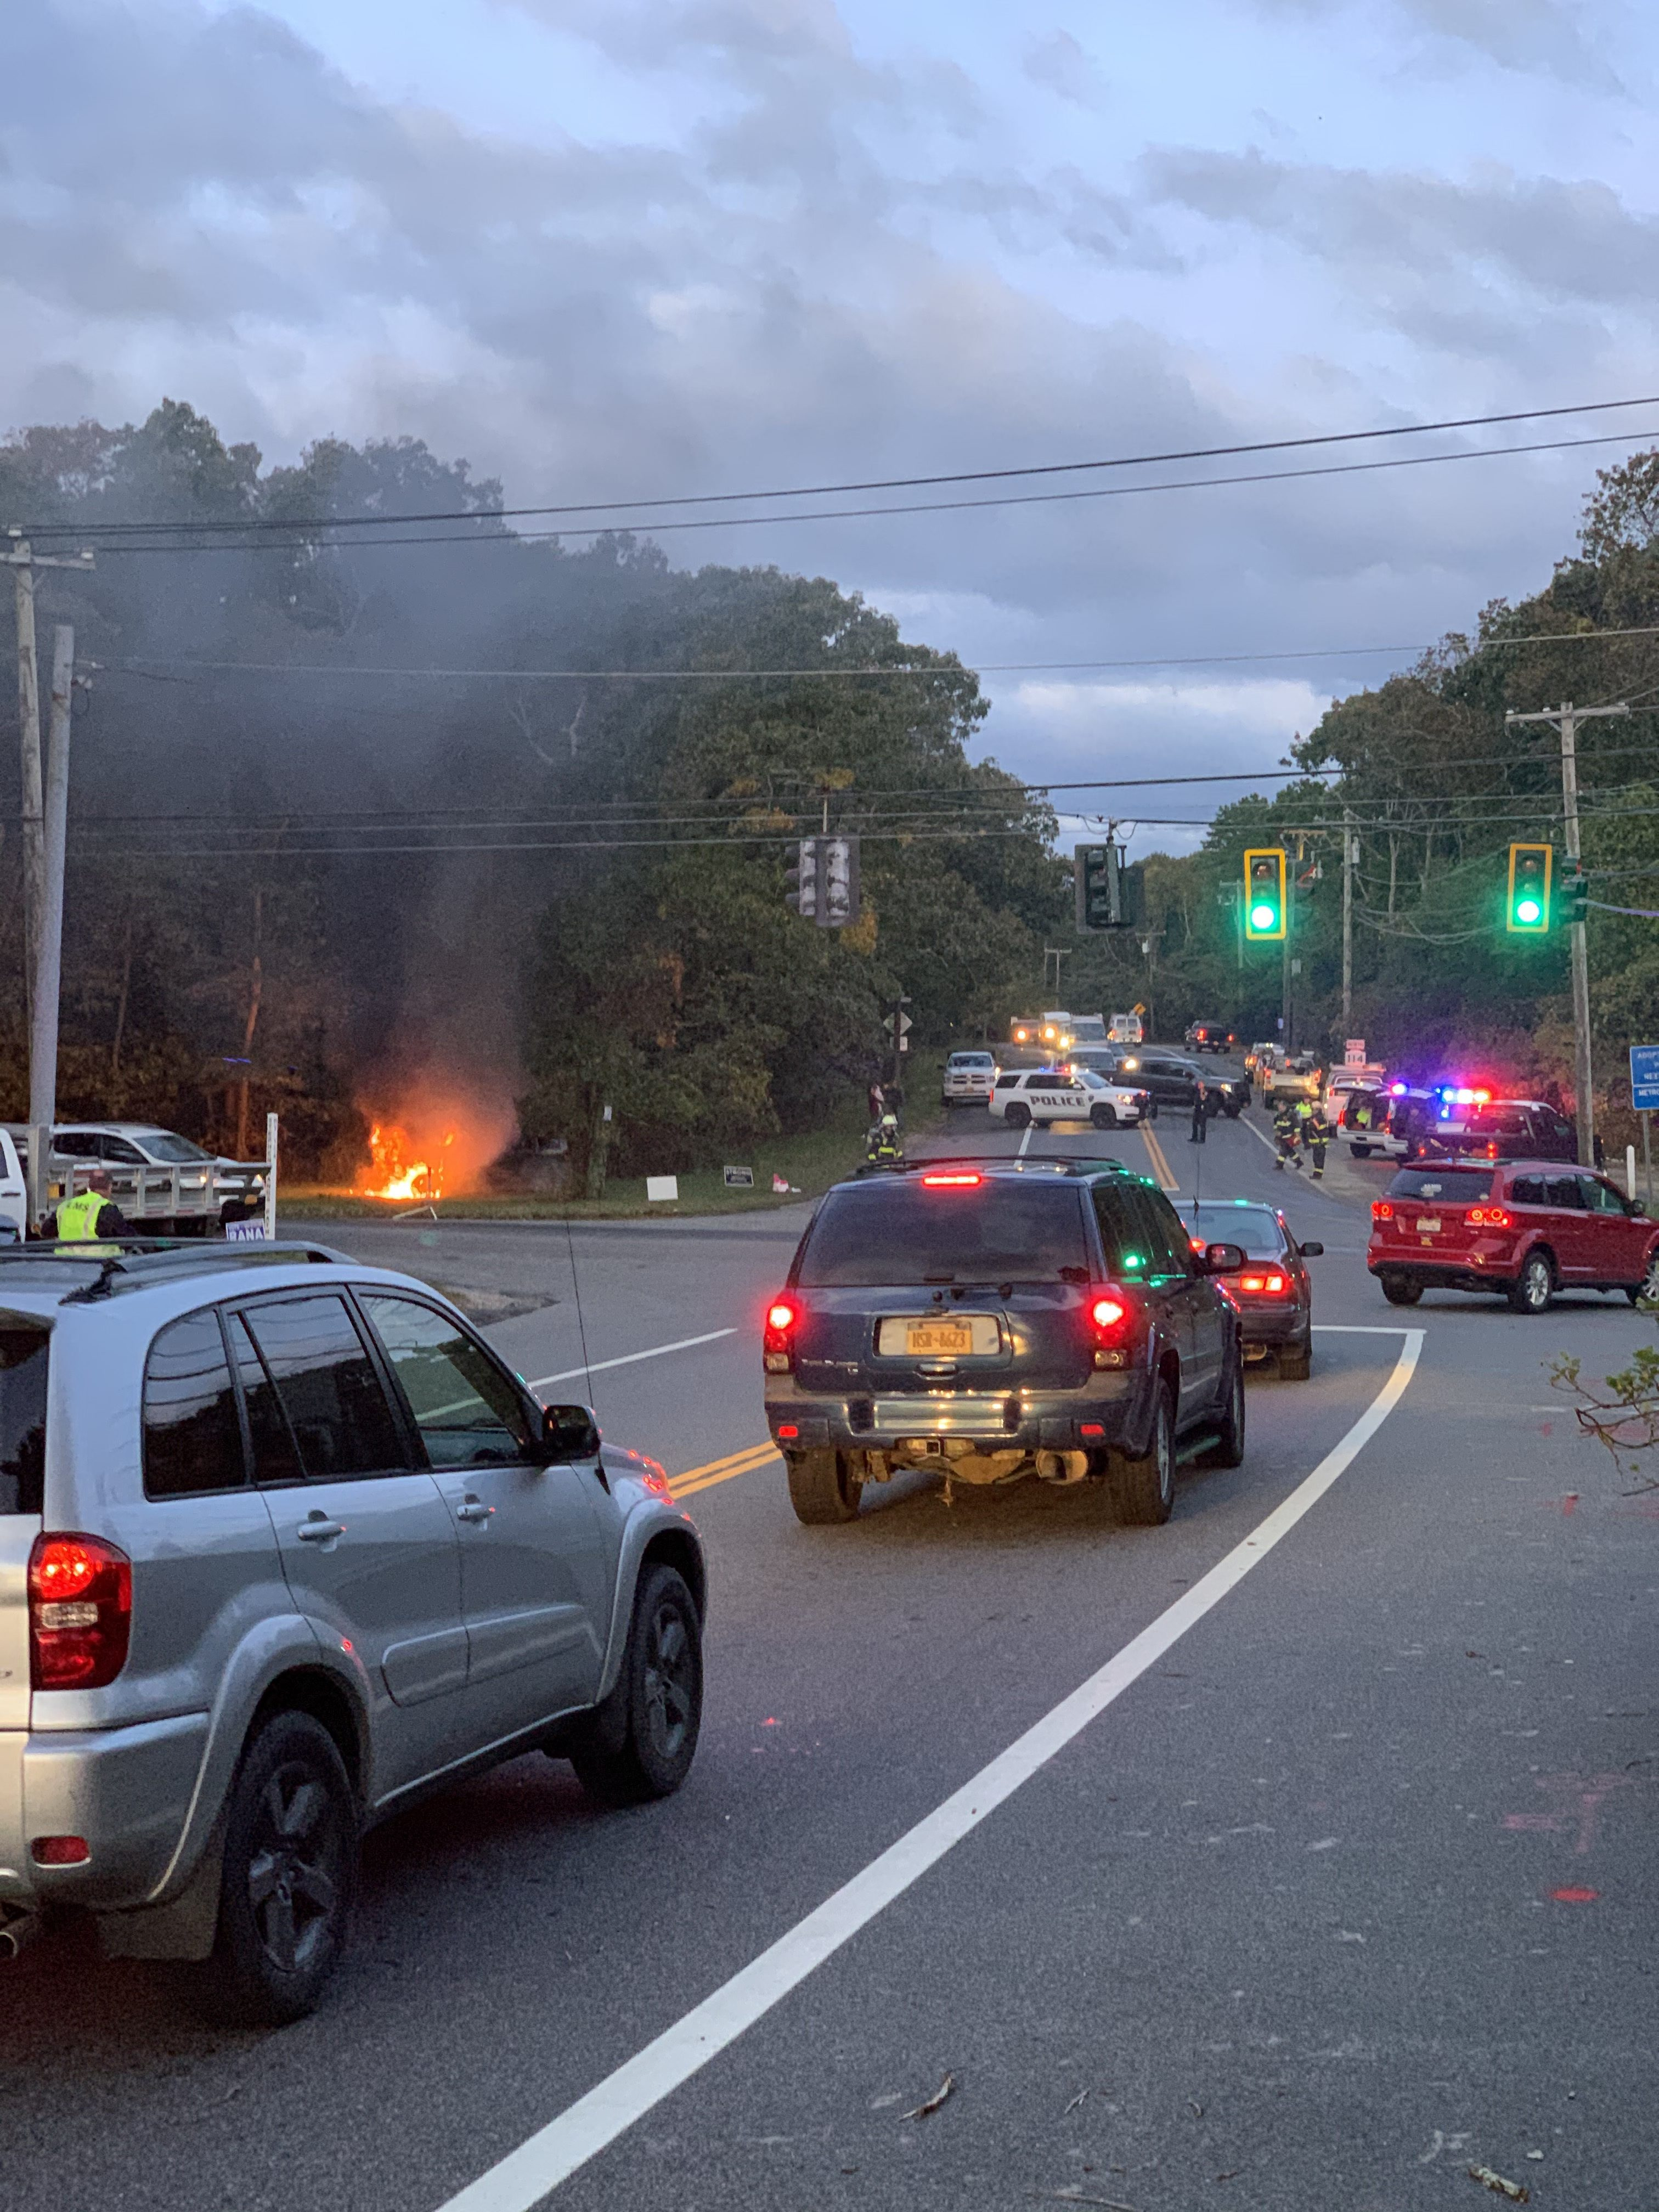 A car fire on the corner of Stephen Hand's Path and Route 114 in East Hampton Thursday morning. COURTESY CHRIS BUCKHOUT